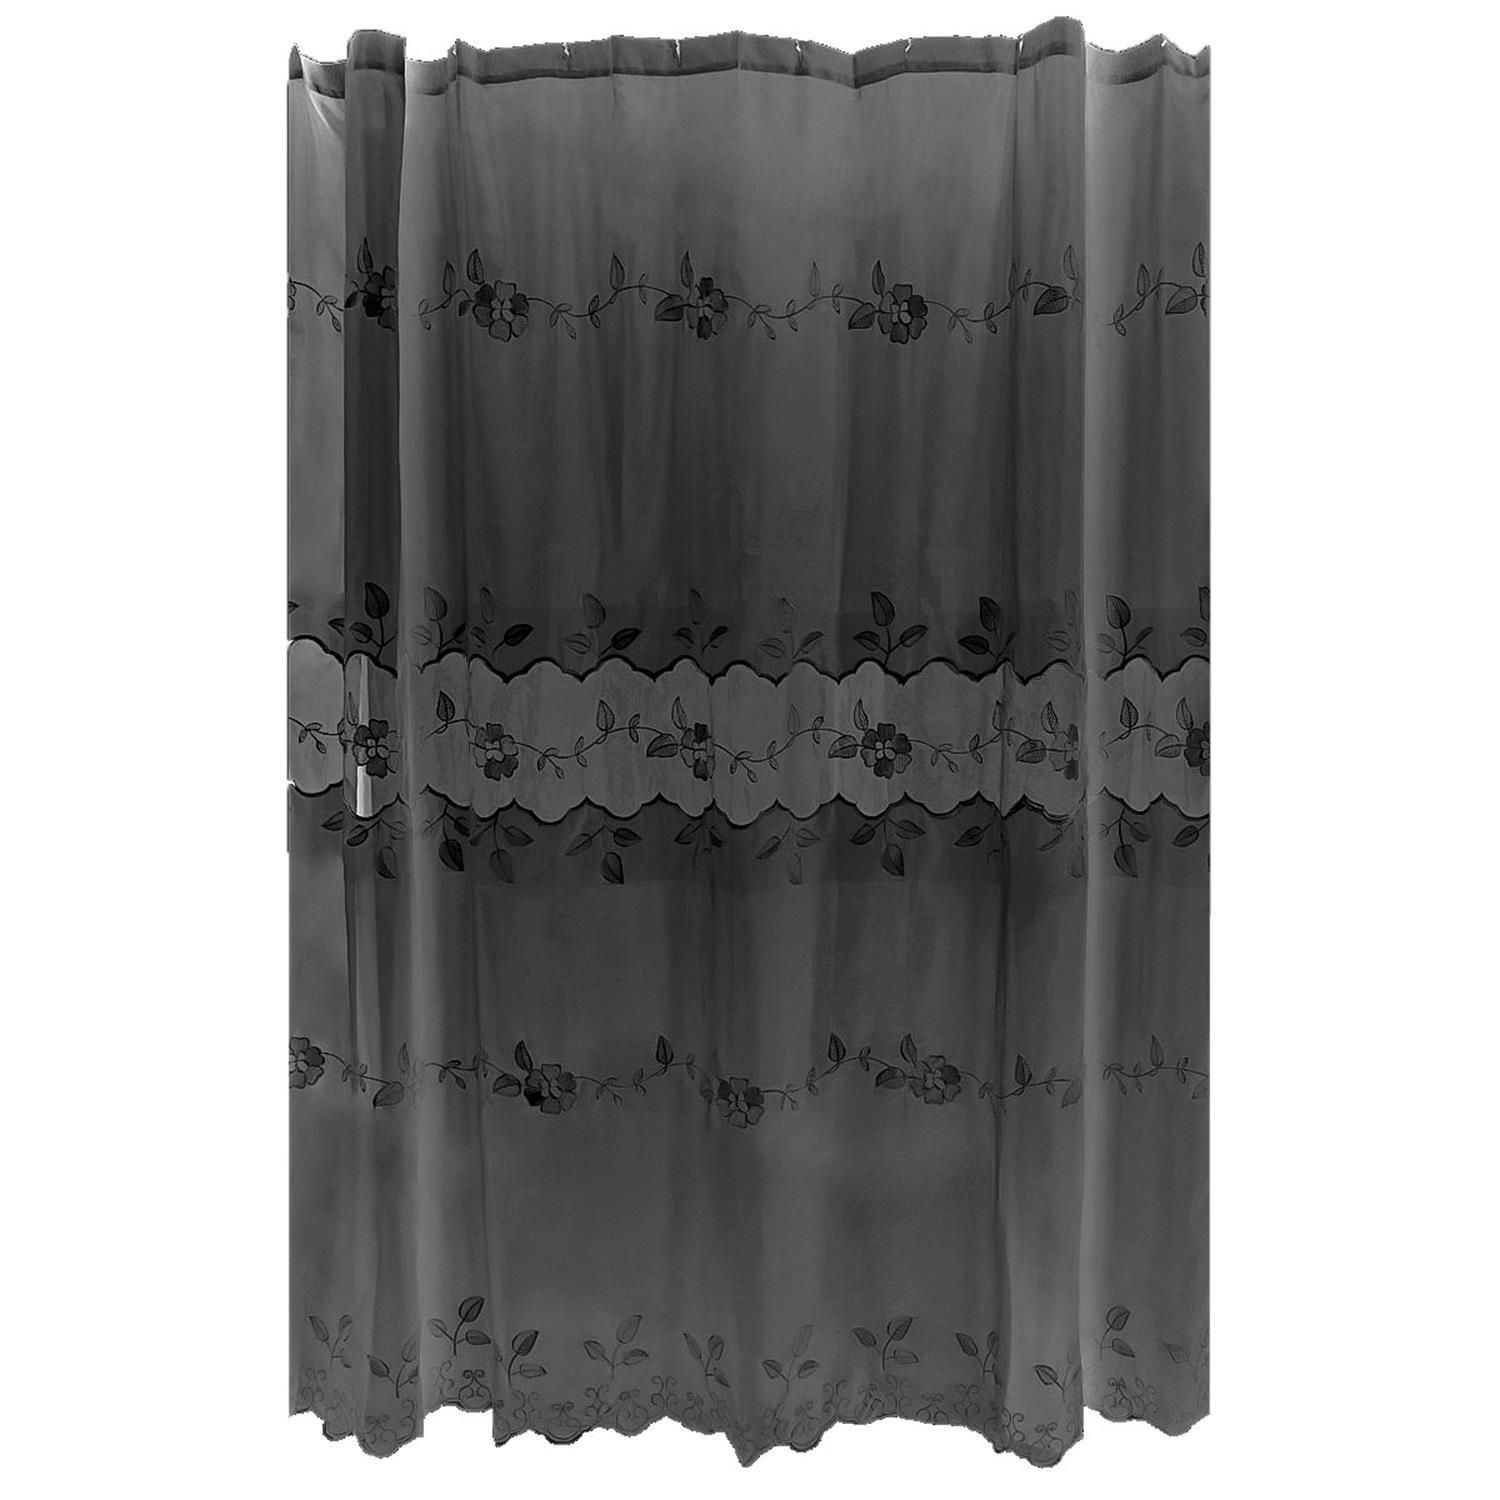 Best inexpensive victorian shower curtain with valance